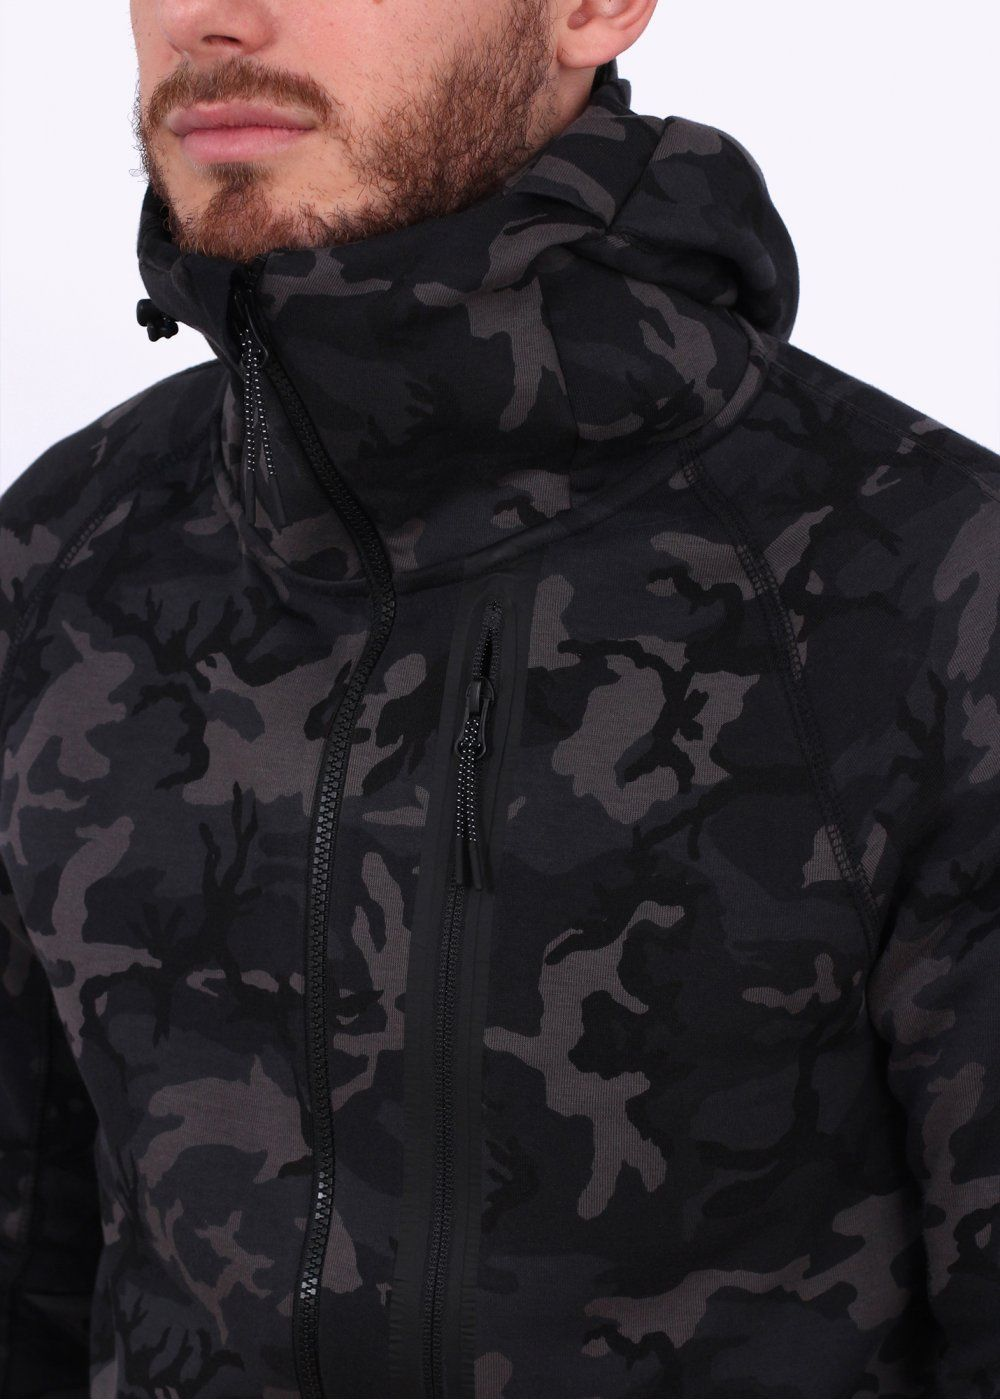 a4cf571a4605 Nike Apparel Tech Fleece Camo Hoody - Medium Ash